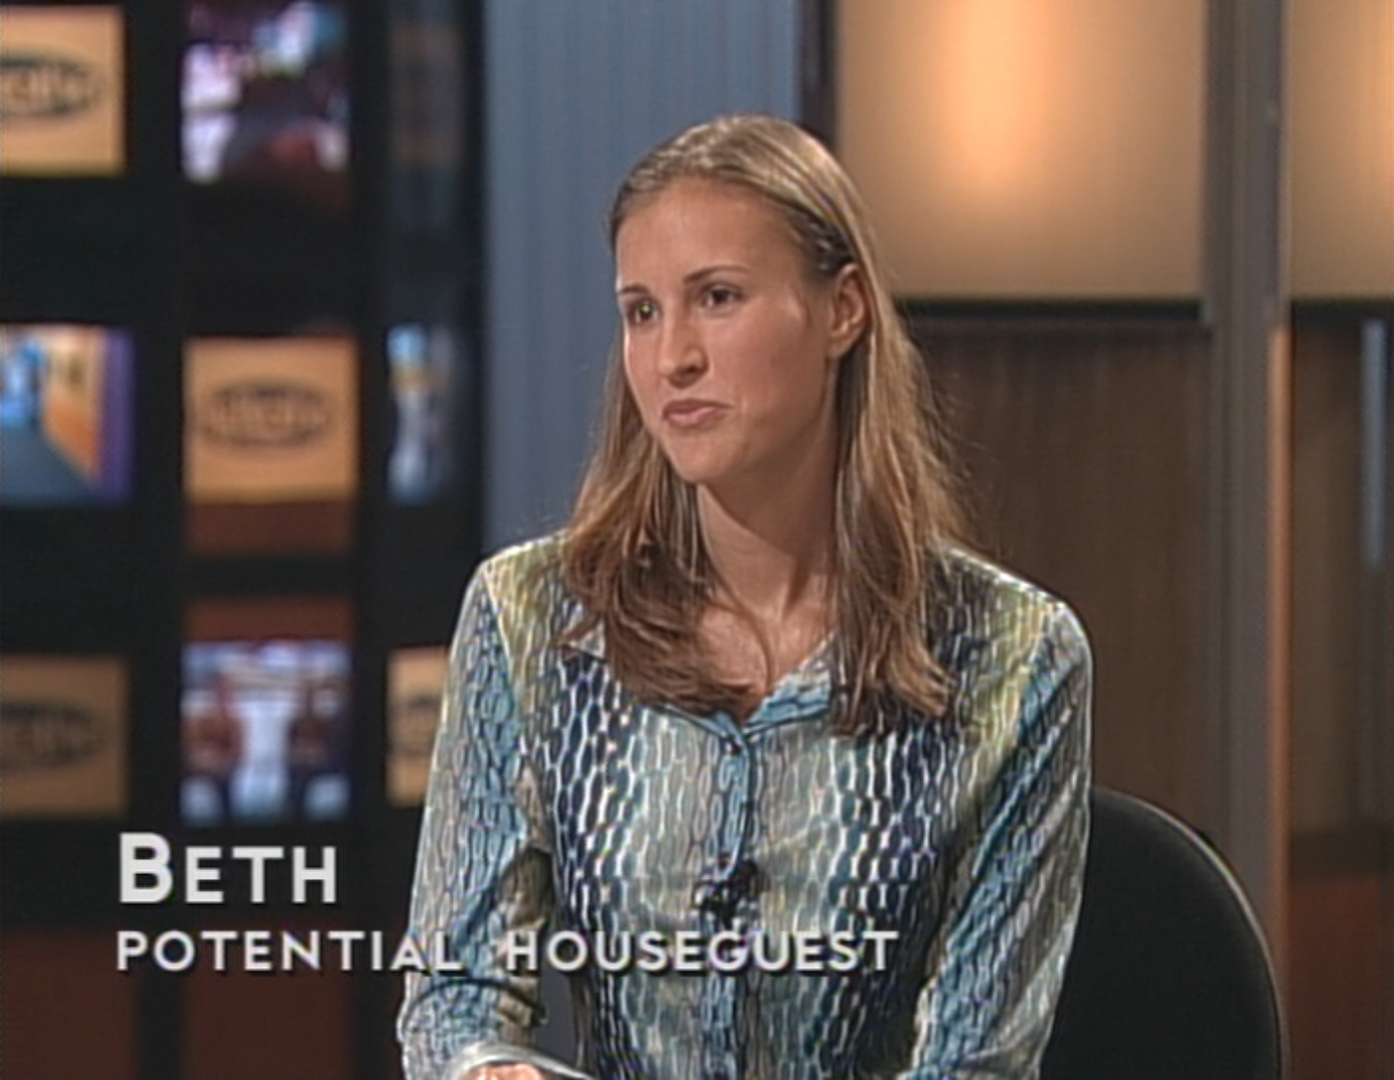 Beth (BB1 Potential Houseguest)